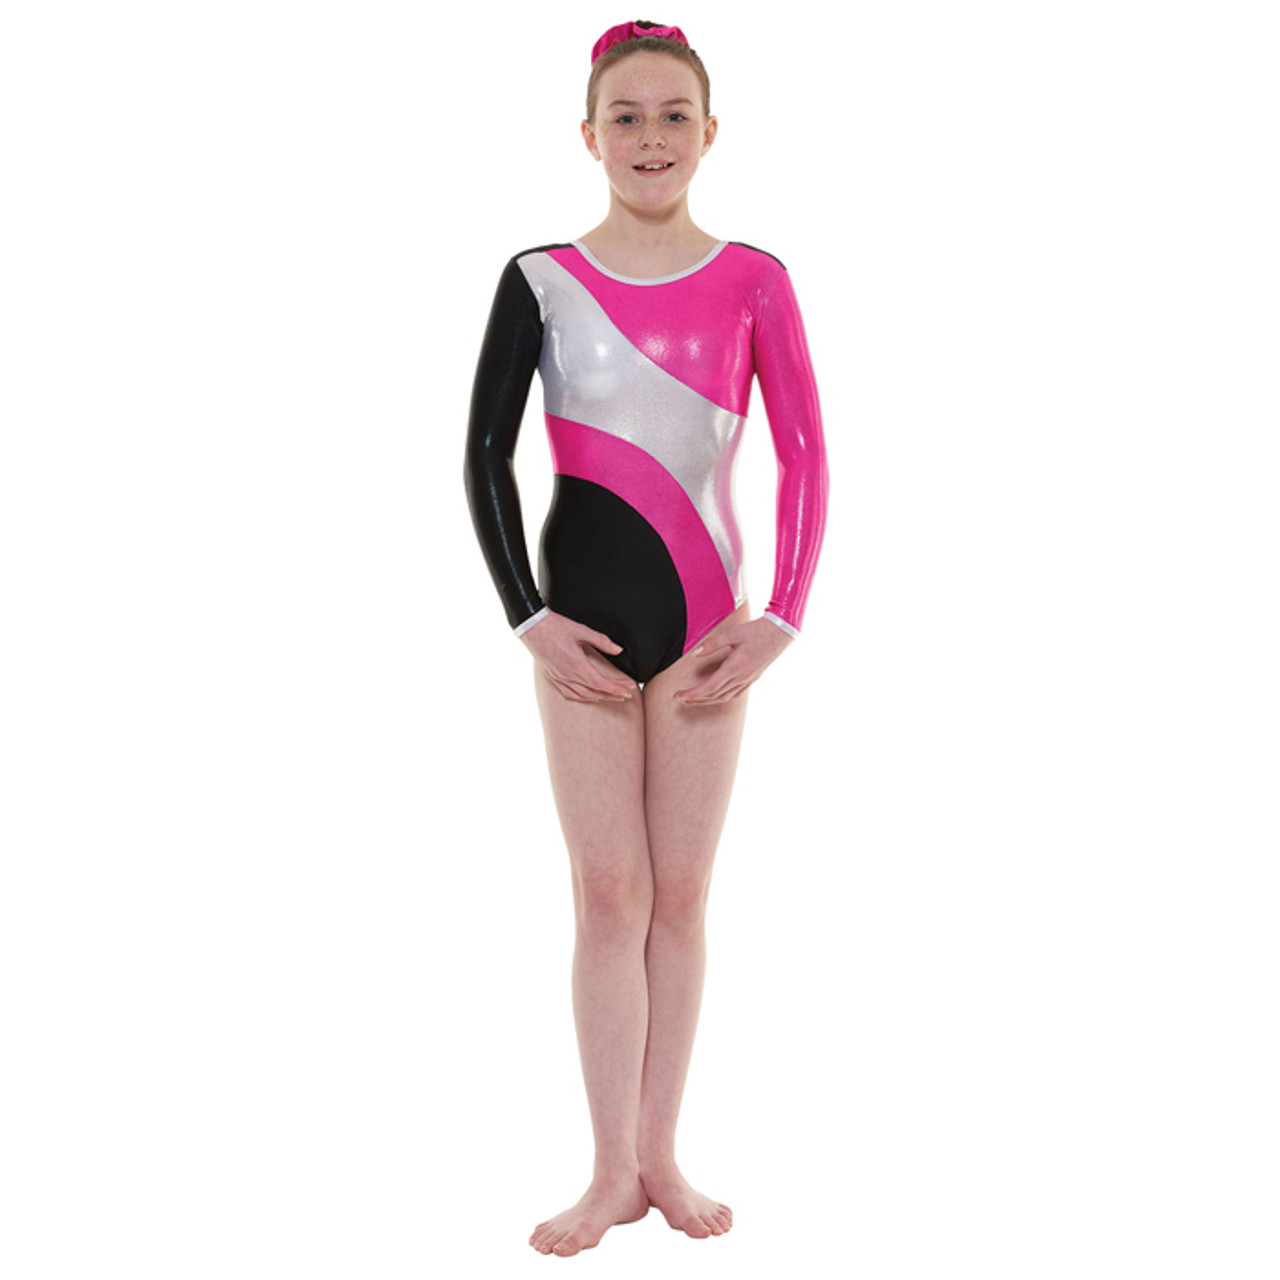 2d551a2aa TAPPERS   POINTERS GYM 42 CARNIVAL LEOTARD Jr - 4 dance